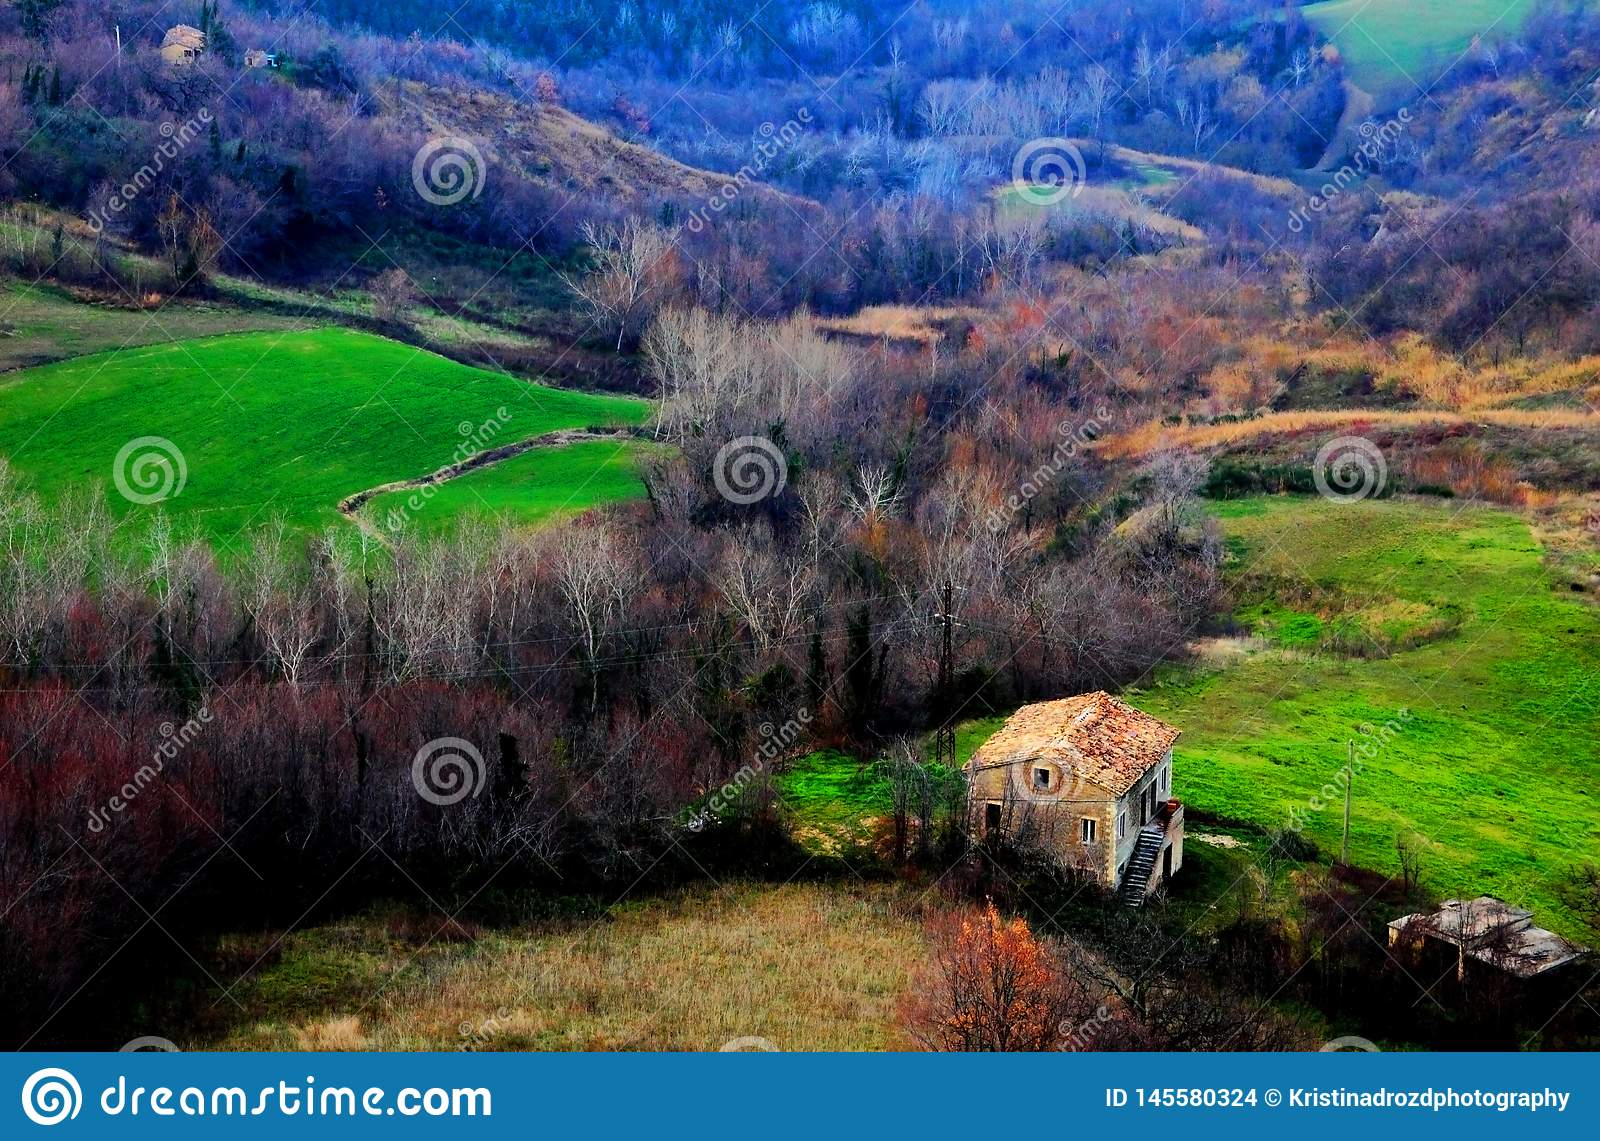 View from above at an house, forests and fields